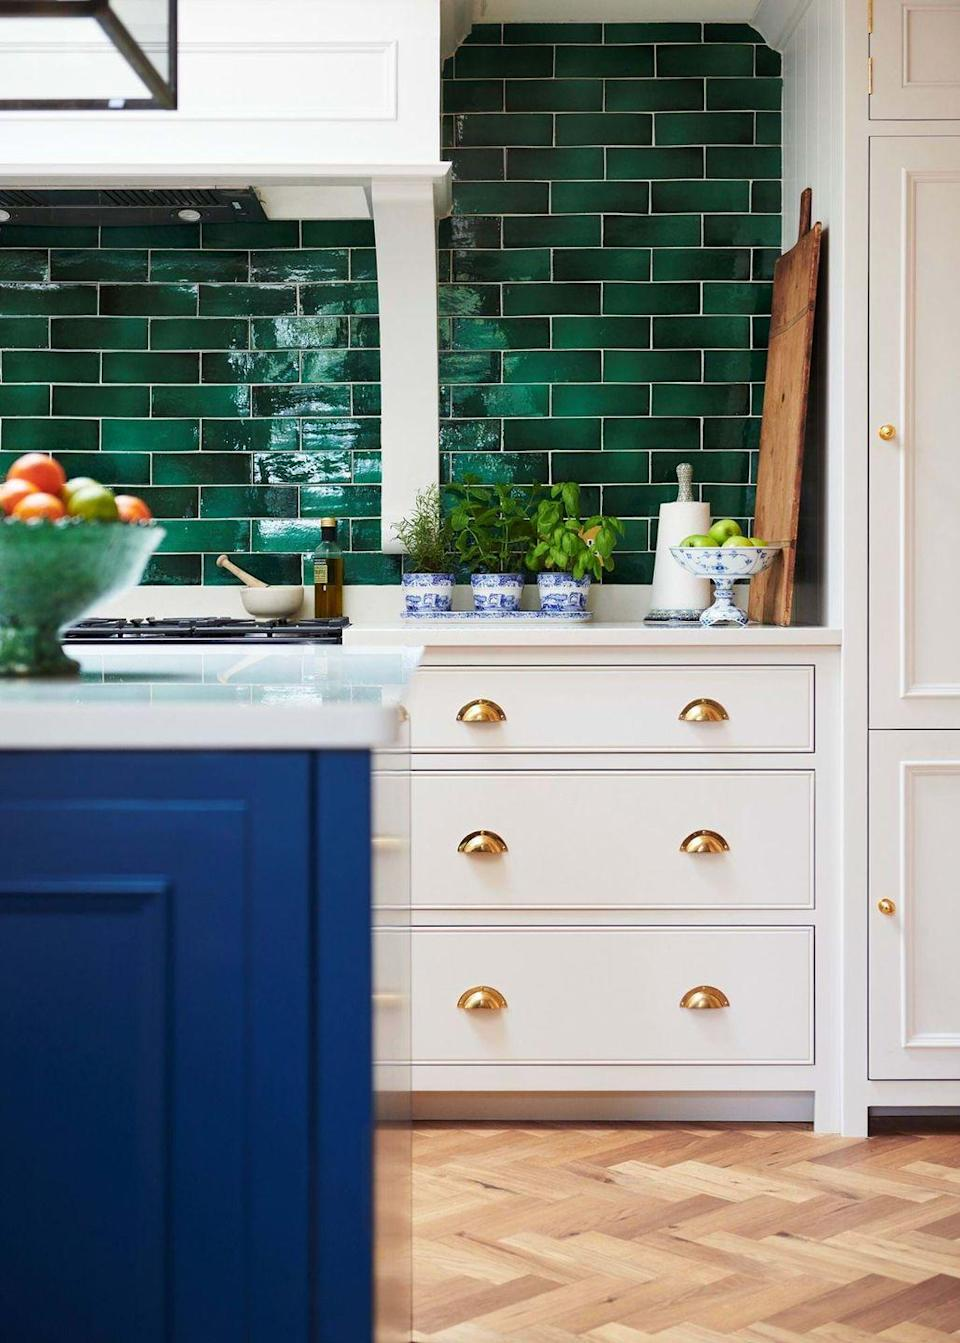 """<p>If you want your white kitchen cabinets to stand out, go for a contrast. Jewel-toned accents, such as emerald green tiling, sapphire blue doors, or amethyst accessories will make your whites appear crisper and brighter. Metallic hardware is the perfect compliment for this design scheme. <br></p><p>Pictured: <a href=""""https://www.neptune.com/kitchen/chichester/"""" rel=""""nofollow noopener"""" target=""""_blank"""" data-ylk=""""slk:Chichester kitchen at Neptune"""" class=""""link rapid-noclick-resp"""">Chichester kitchen at Neptune</a></p>"""